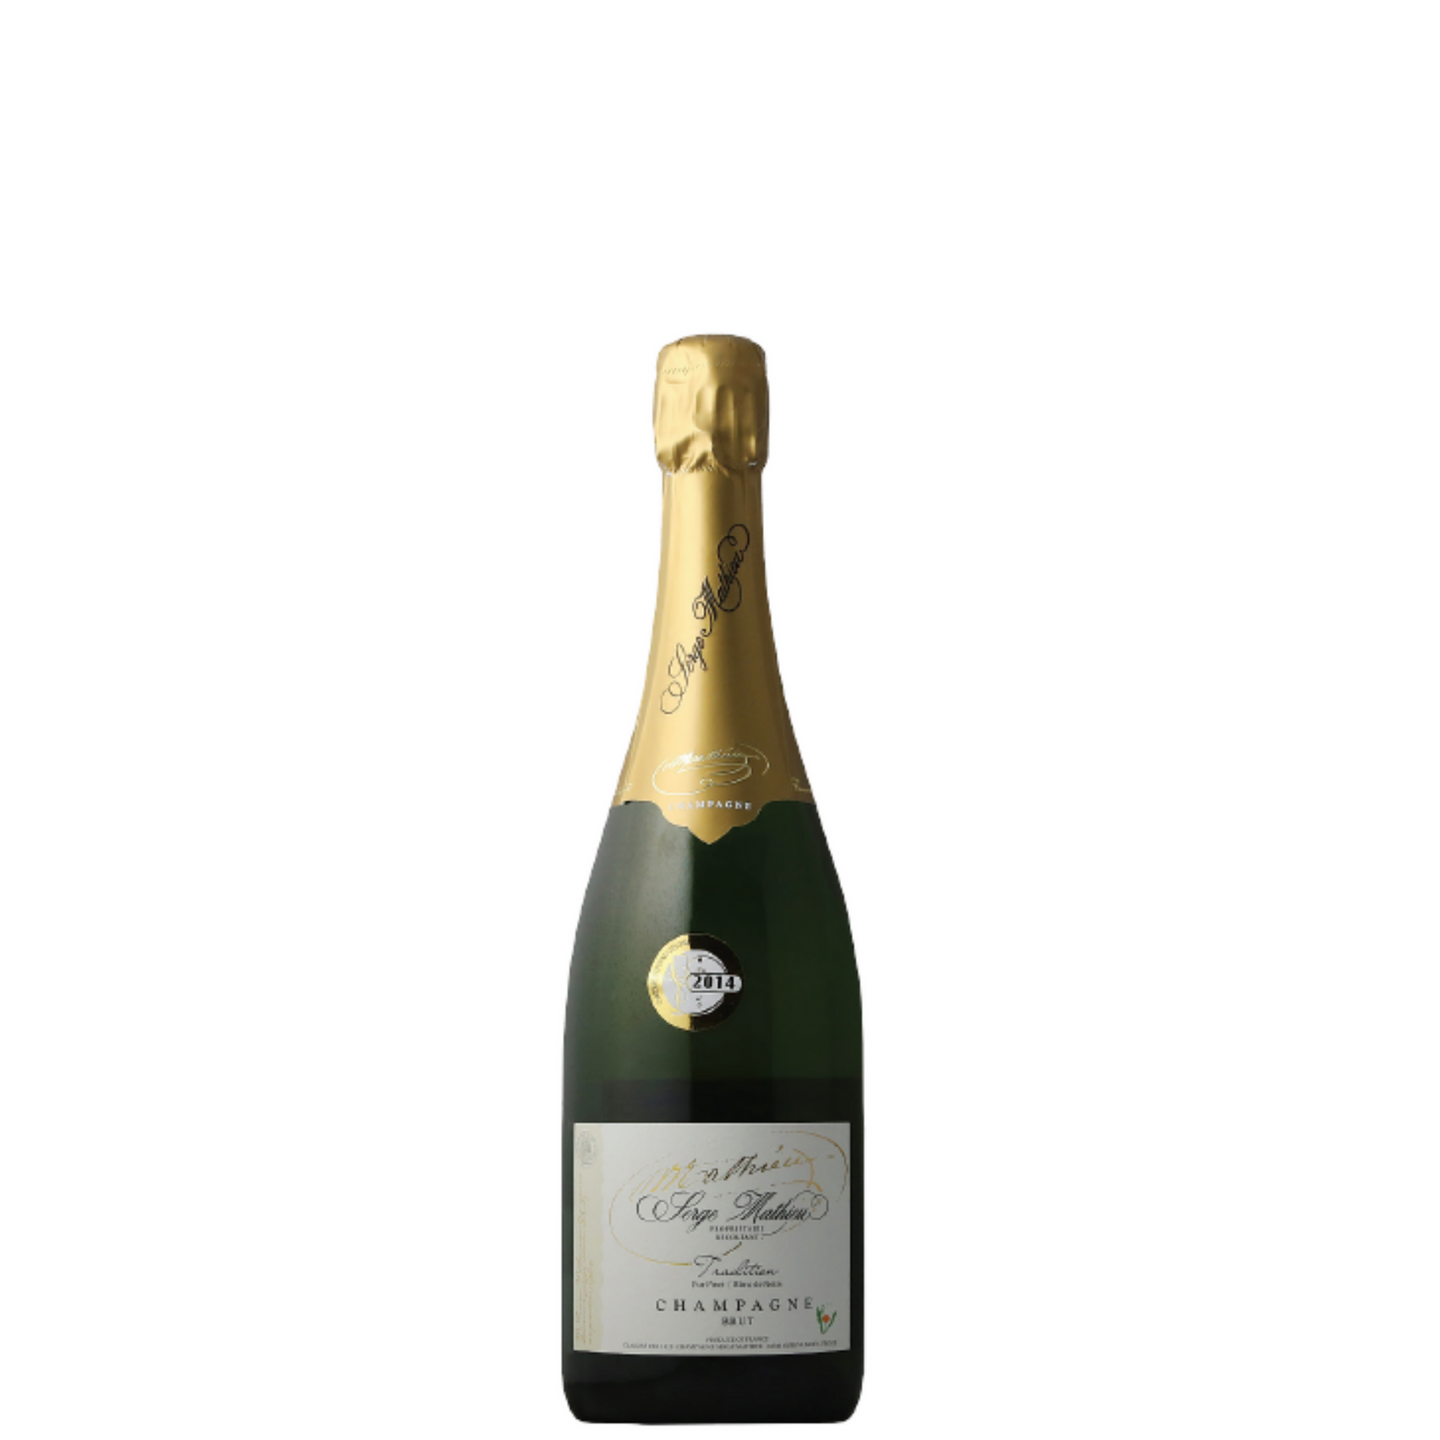 Serge Mathieu Brut Tradition Champagne France 350ml